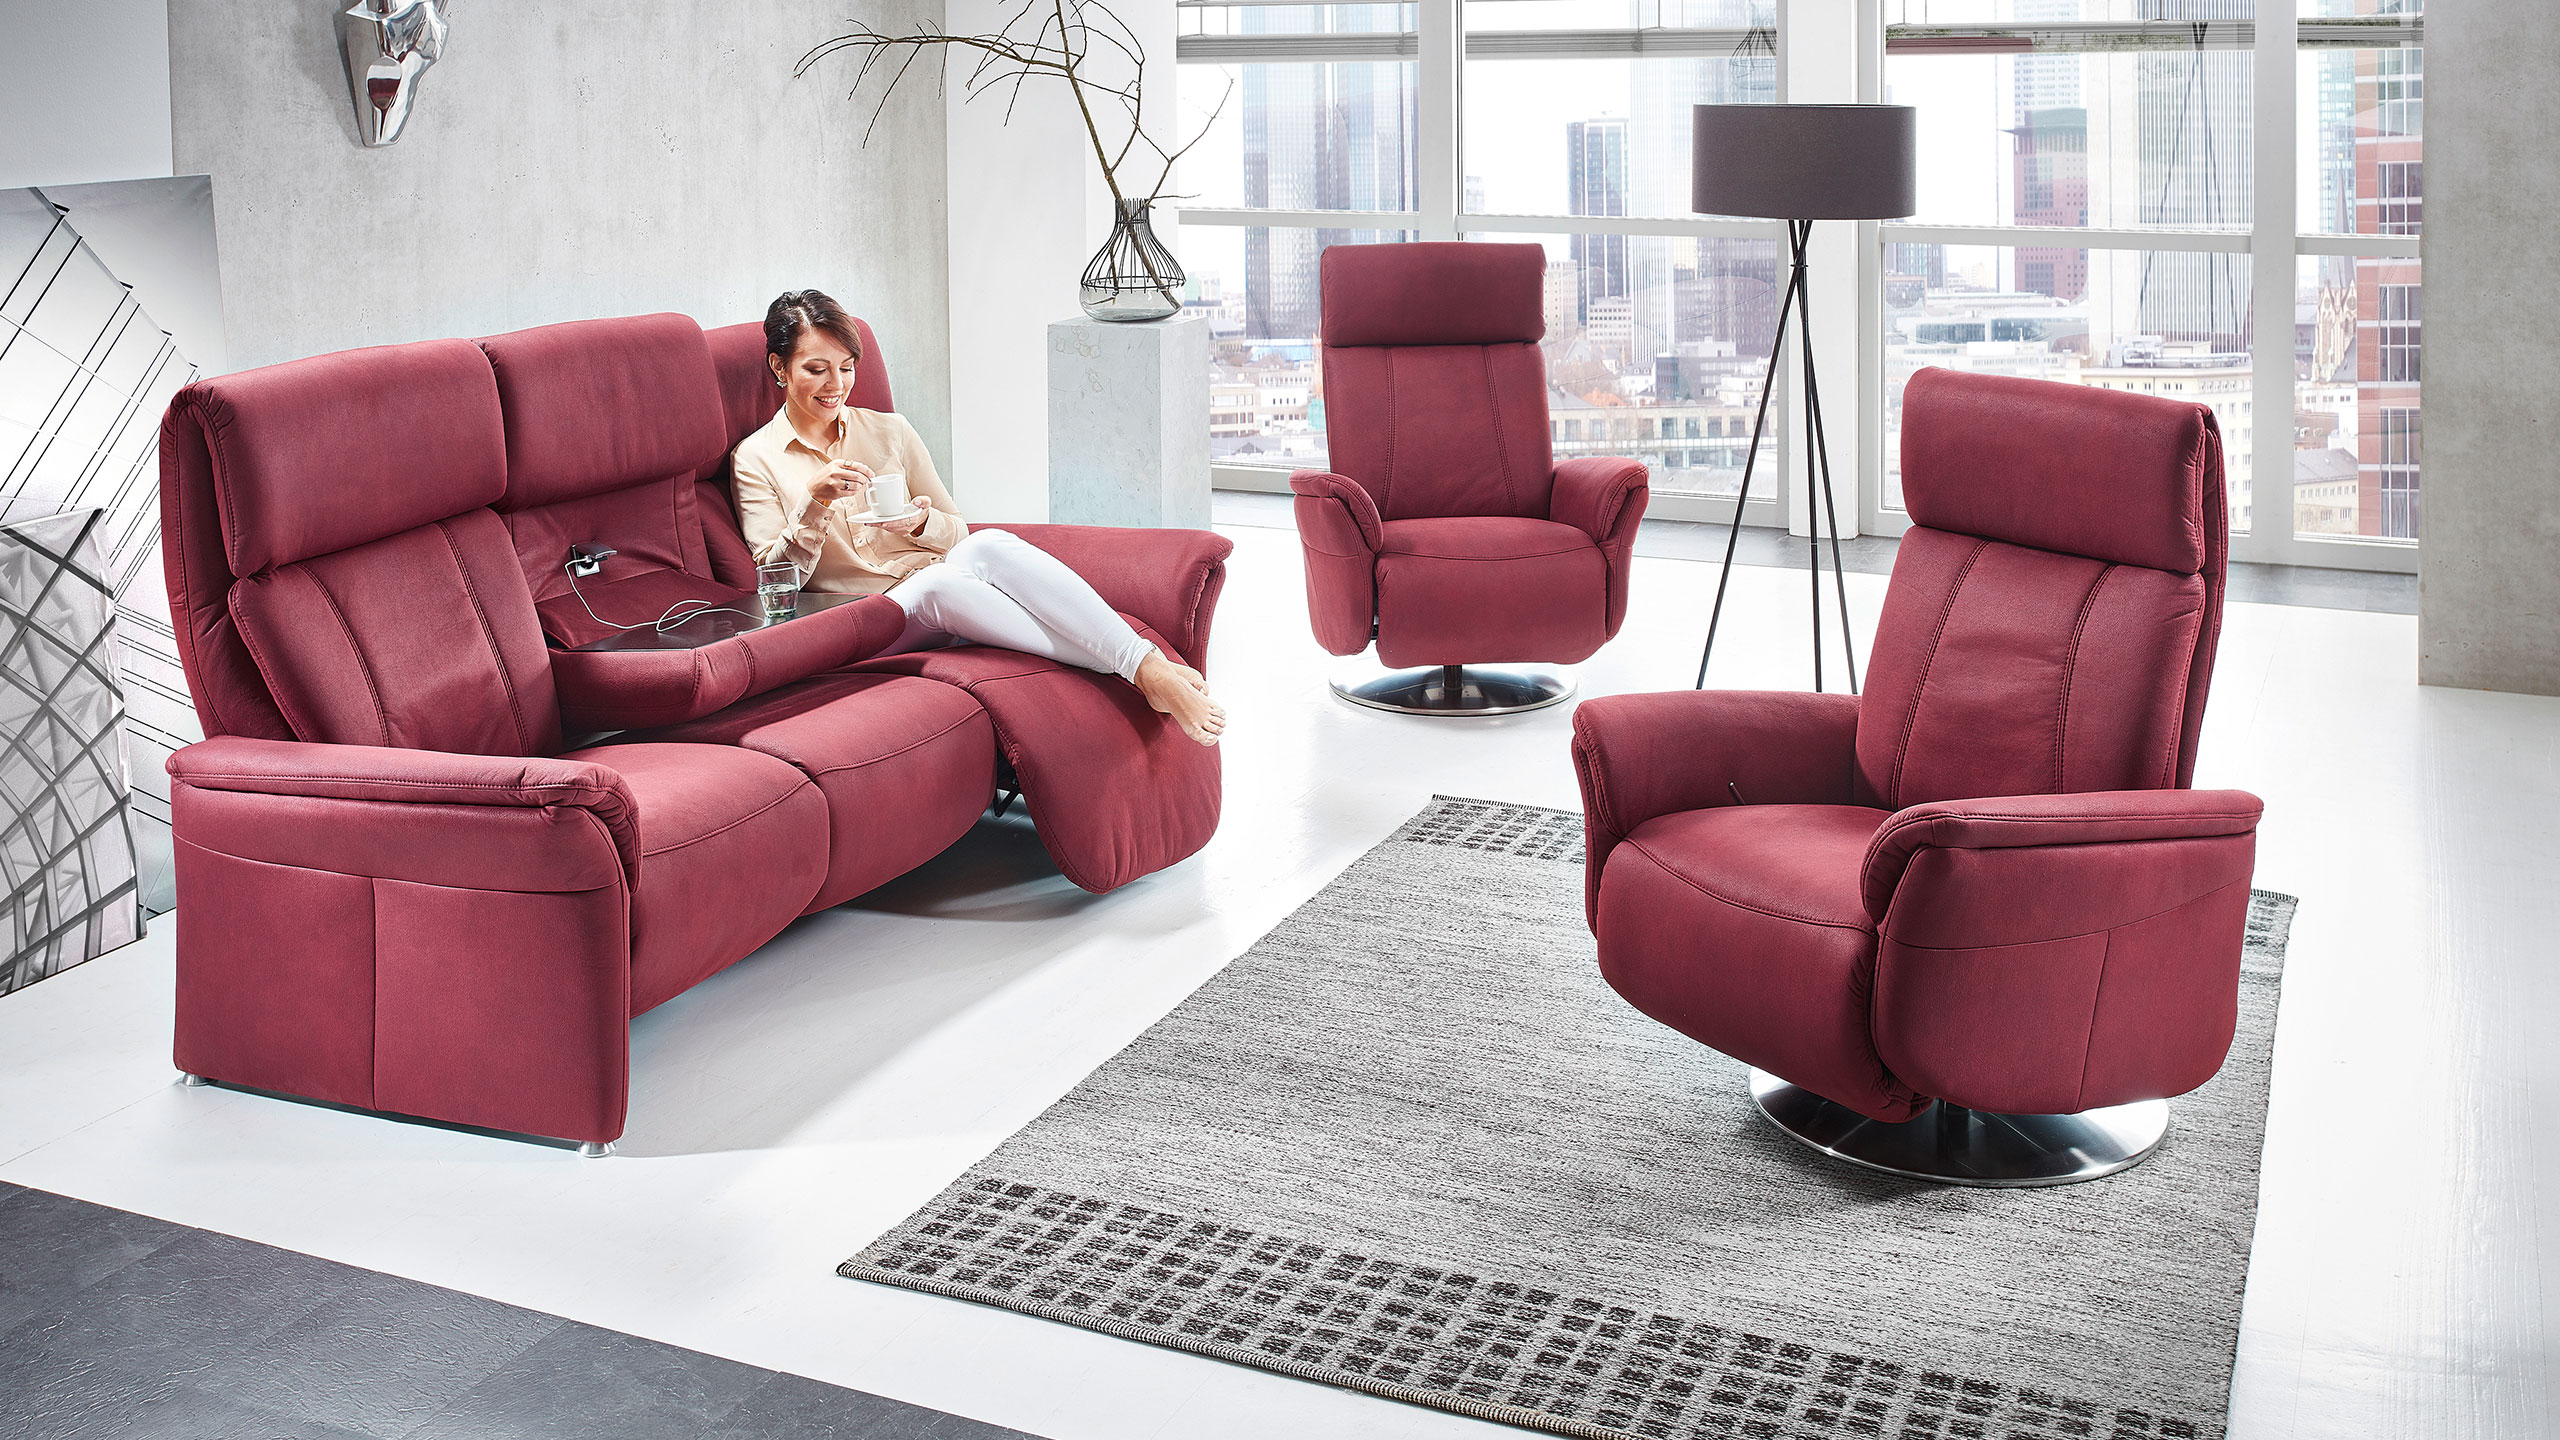 Magic Comfort Rundsofa Stoff Rot